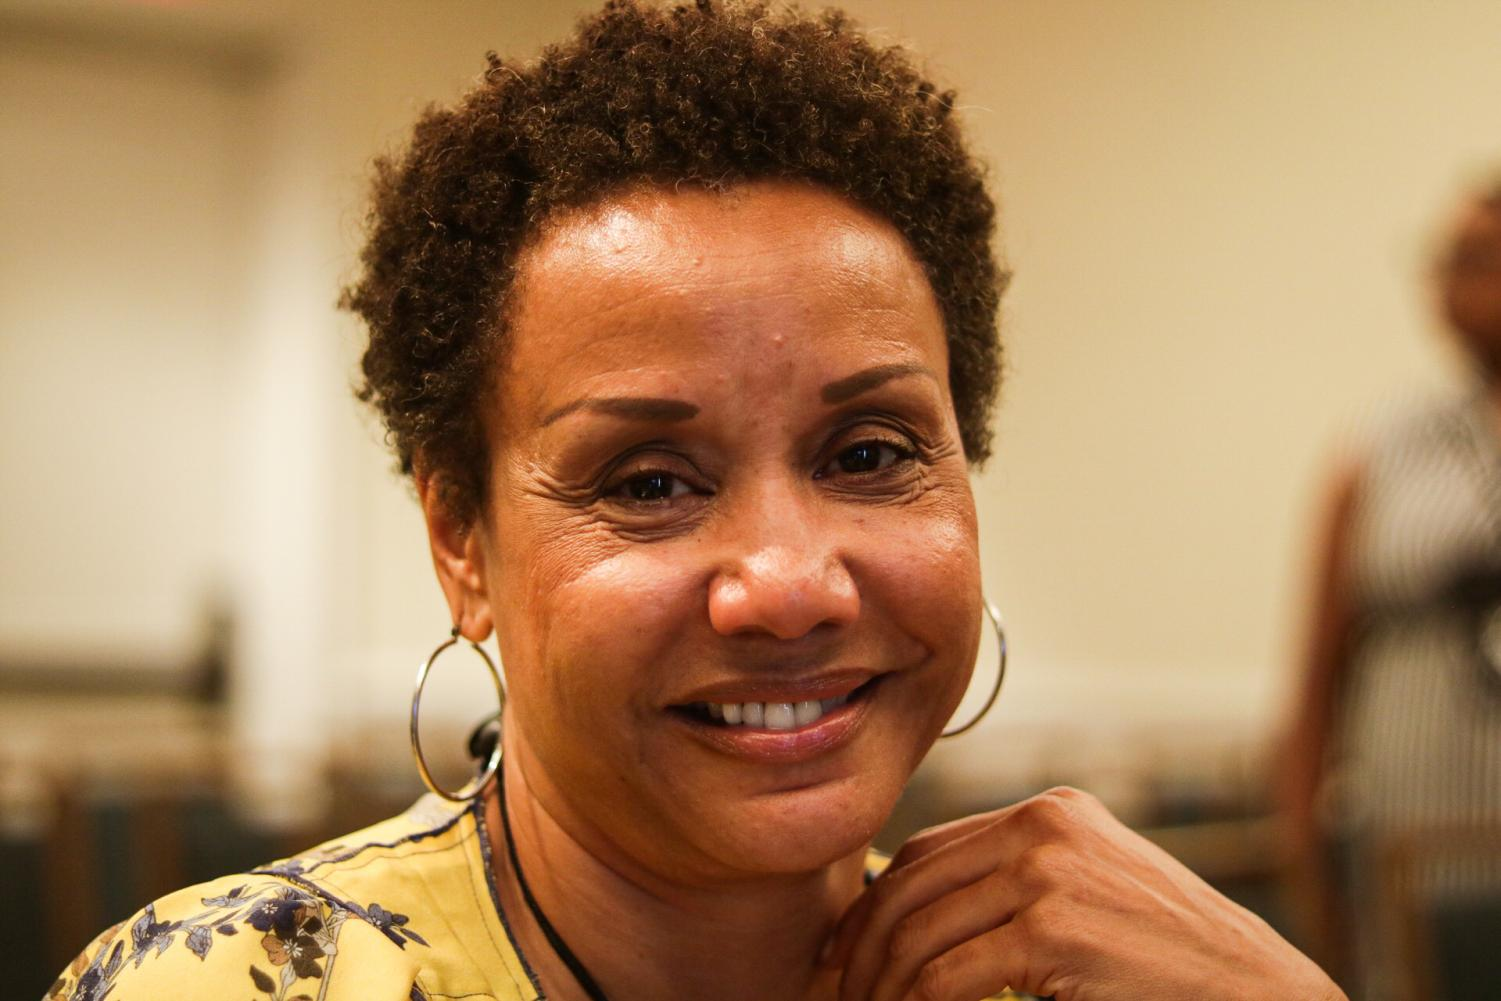 Kelly D. Williams, whose Youth Advocate Programs help inner city youth and their families